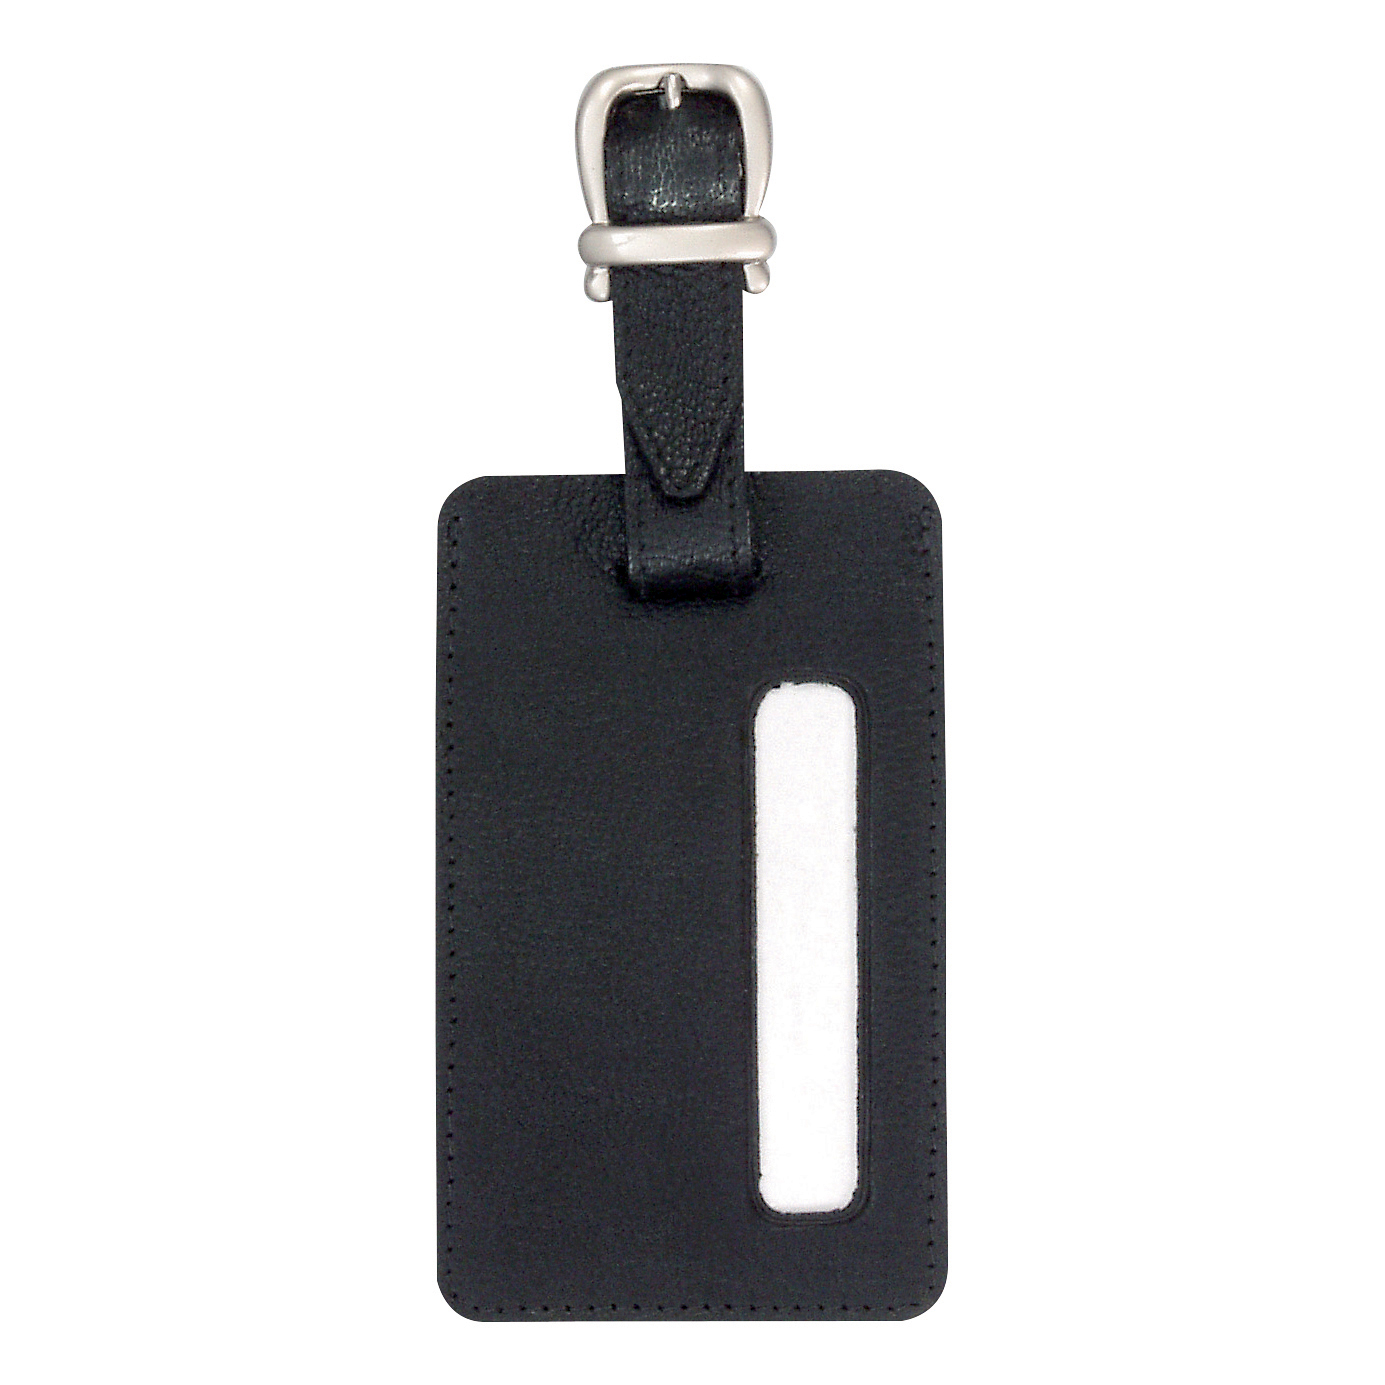 Briefcases & Luggage Alassio Luggage Tag 115x70mm Leather-look Black Ref 43115